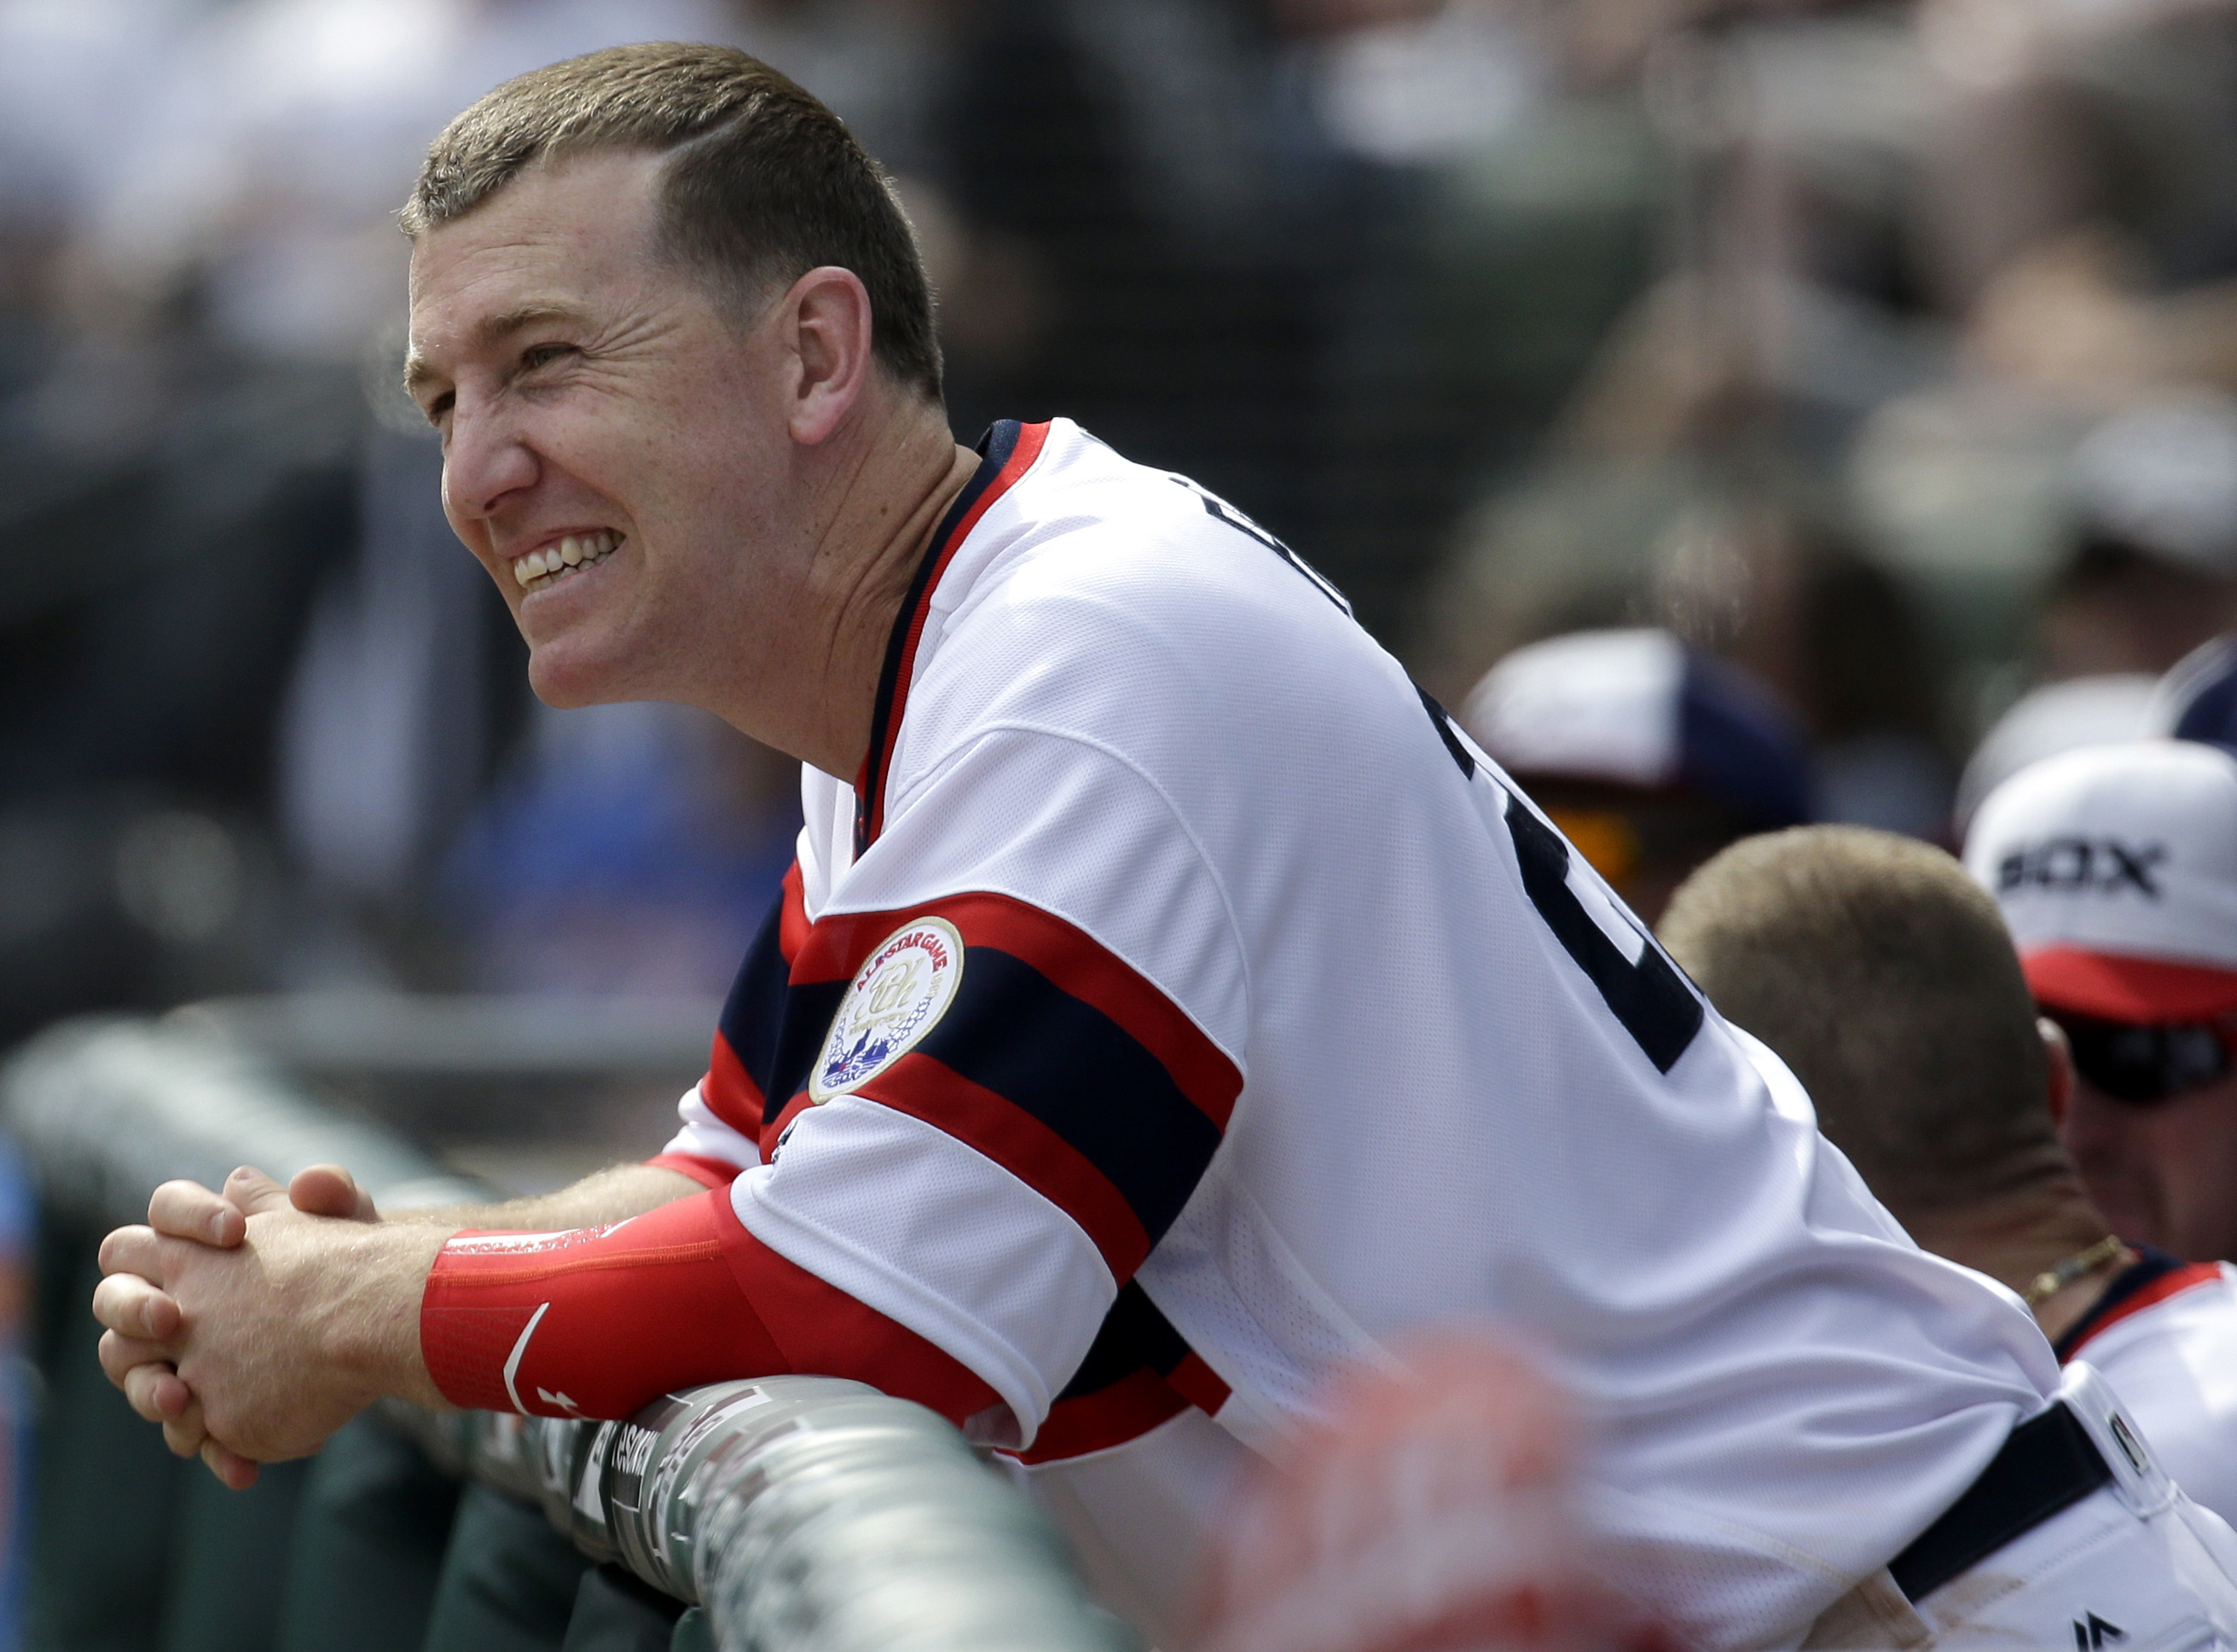 Chicago White Sox's Todd Frazier smiles as he watches teammates during the seventh inning of a baseball game against the Texas Rangers, Sunday, April 24, 2016, in Chicago. (AP Photo/Nam Y. Huh)